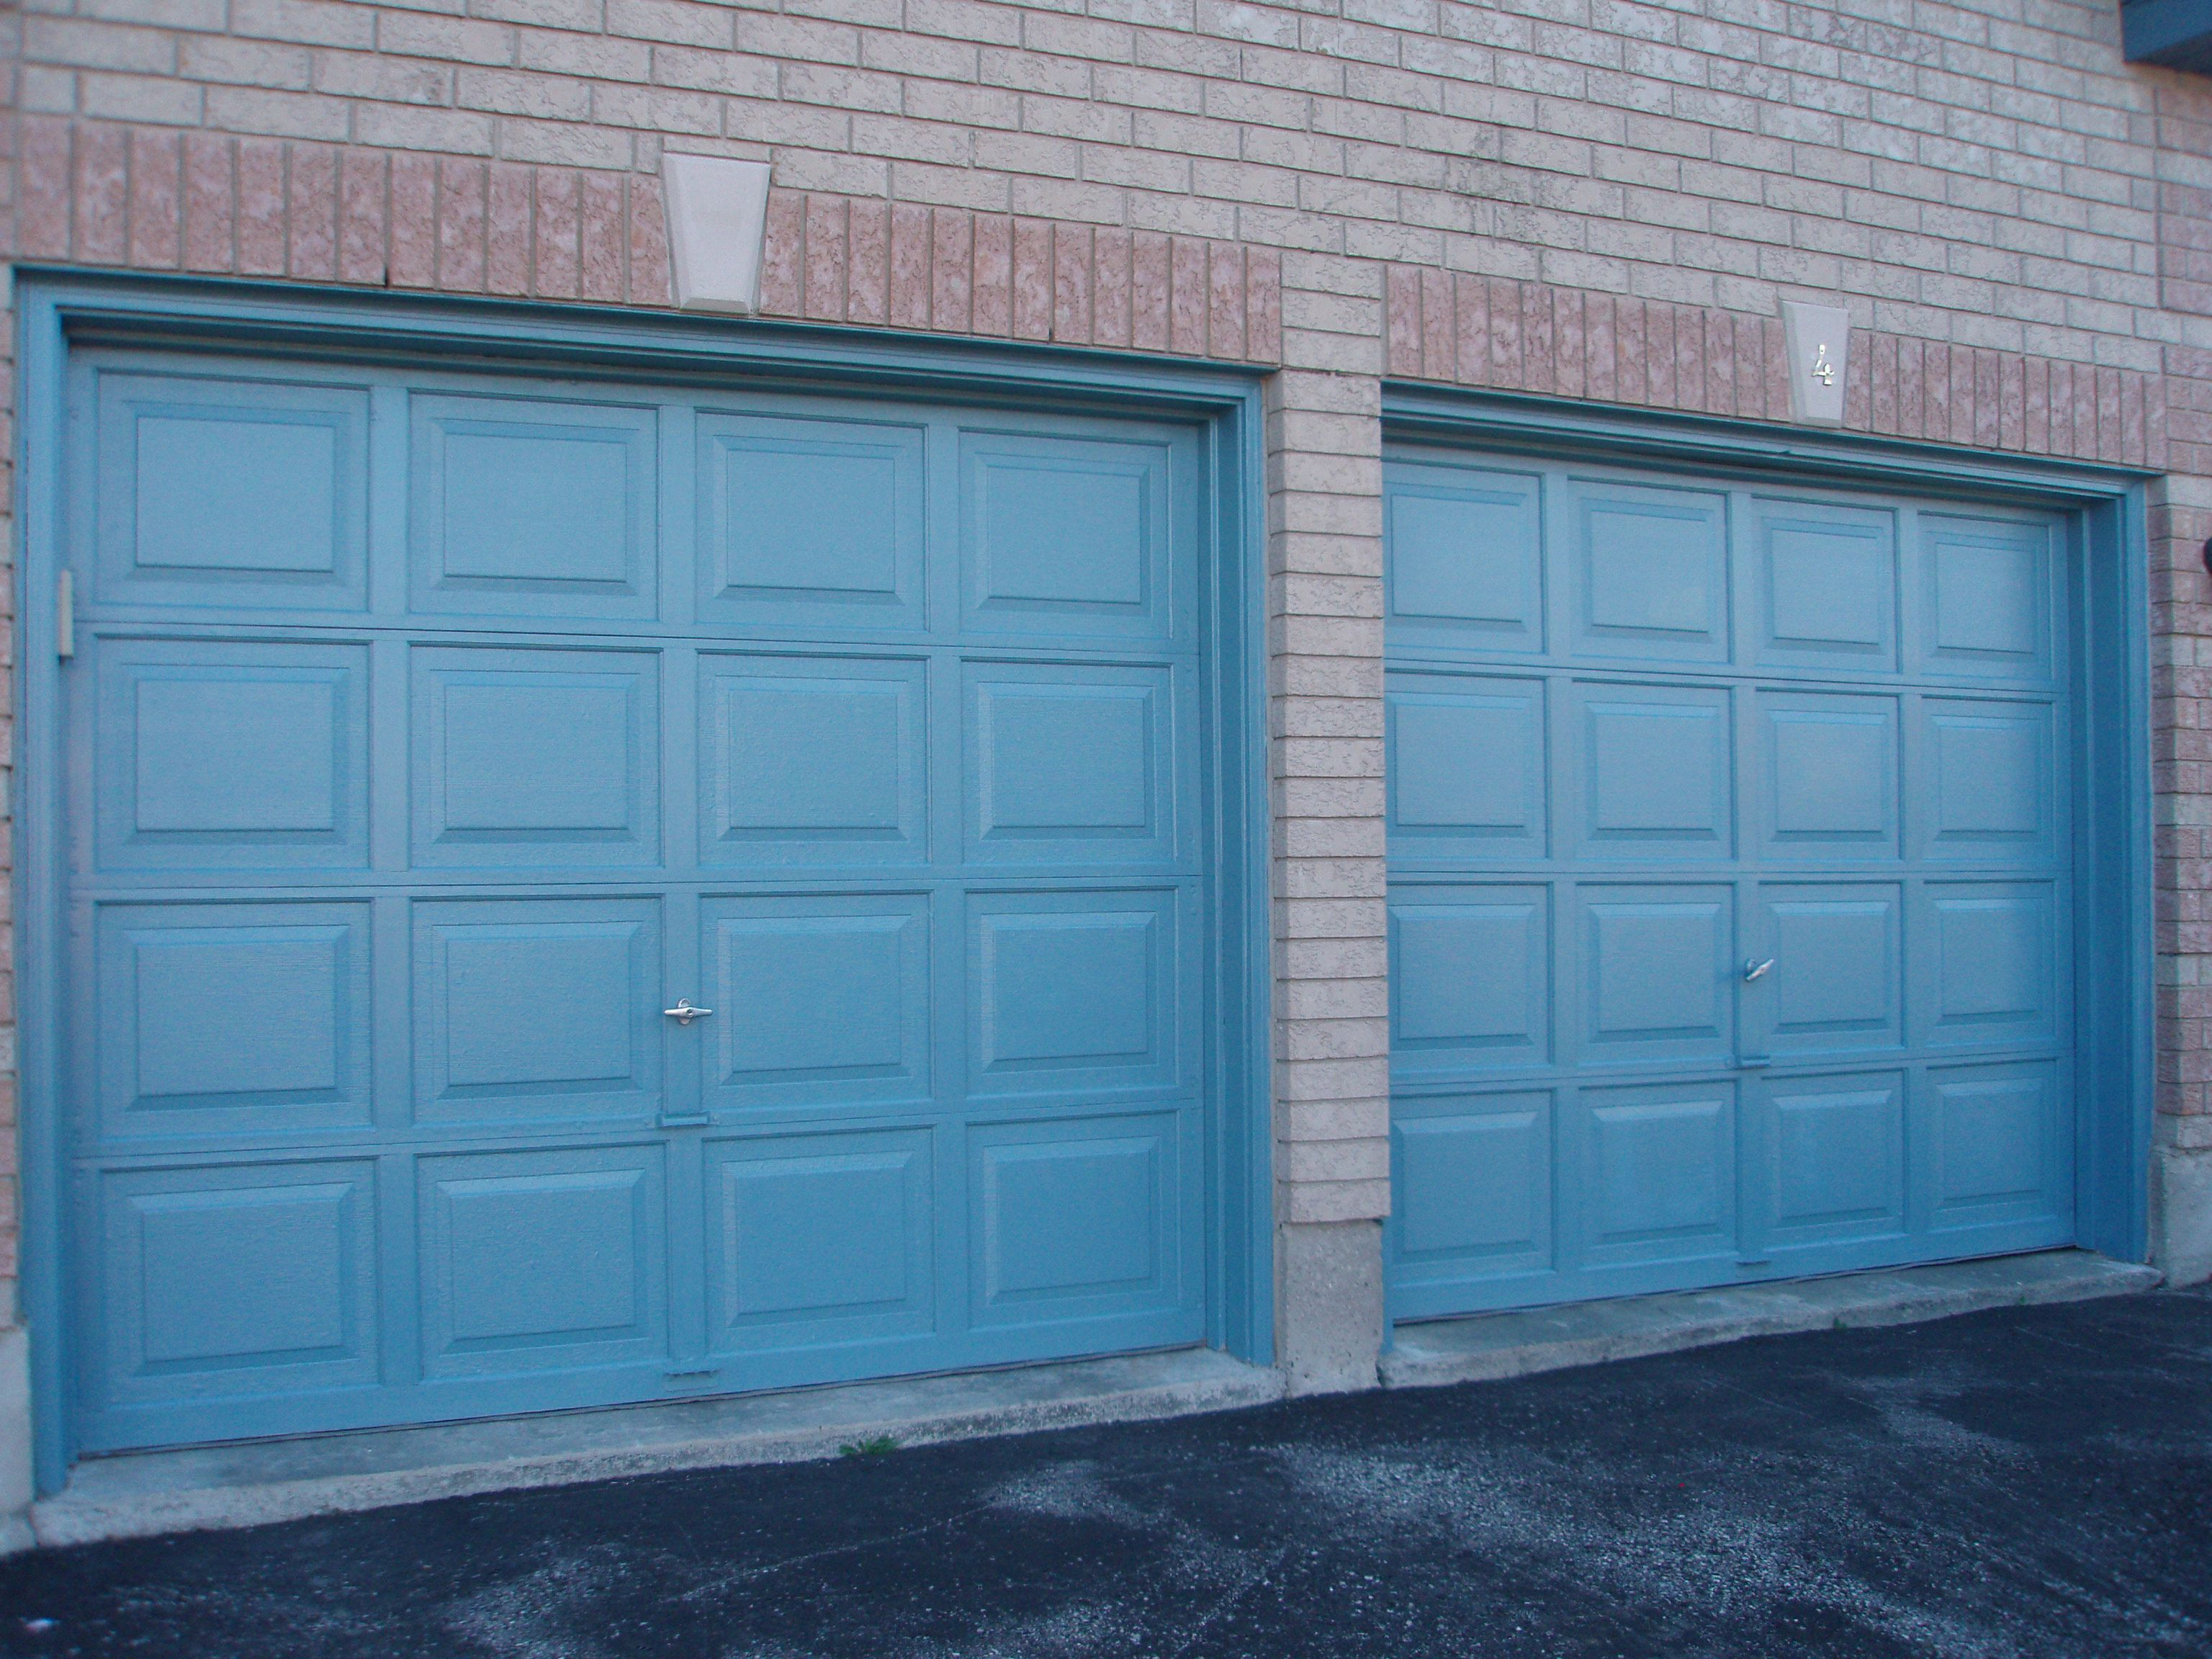 Garage Door Sales Service Repair And Installation Of Residential Commercial Overhead Garage Doors And Electric Openers In Barrie Garagedeur